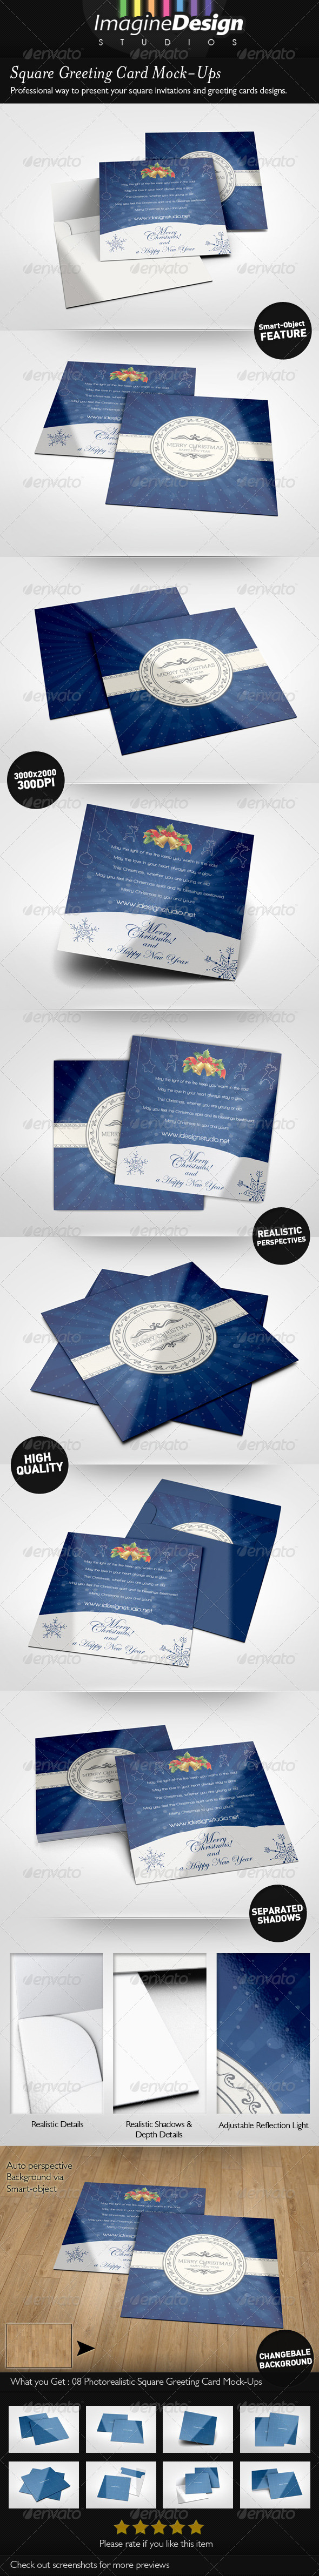 GraphicRiver Square Greeting Card Mockup 6067992